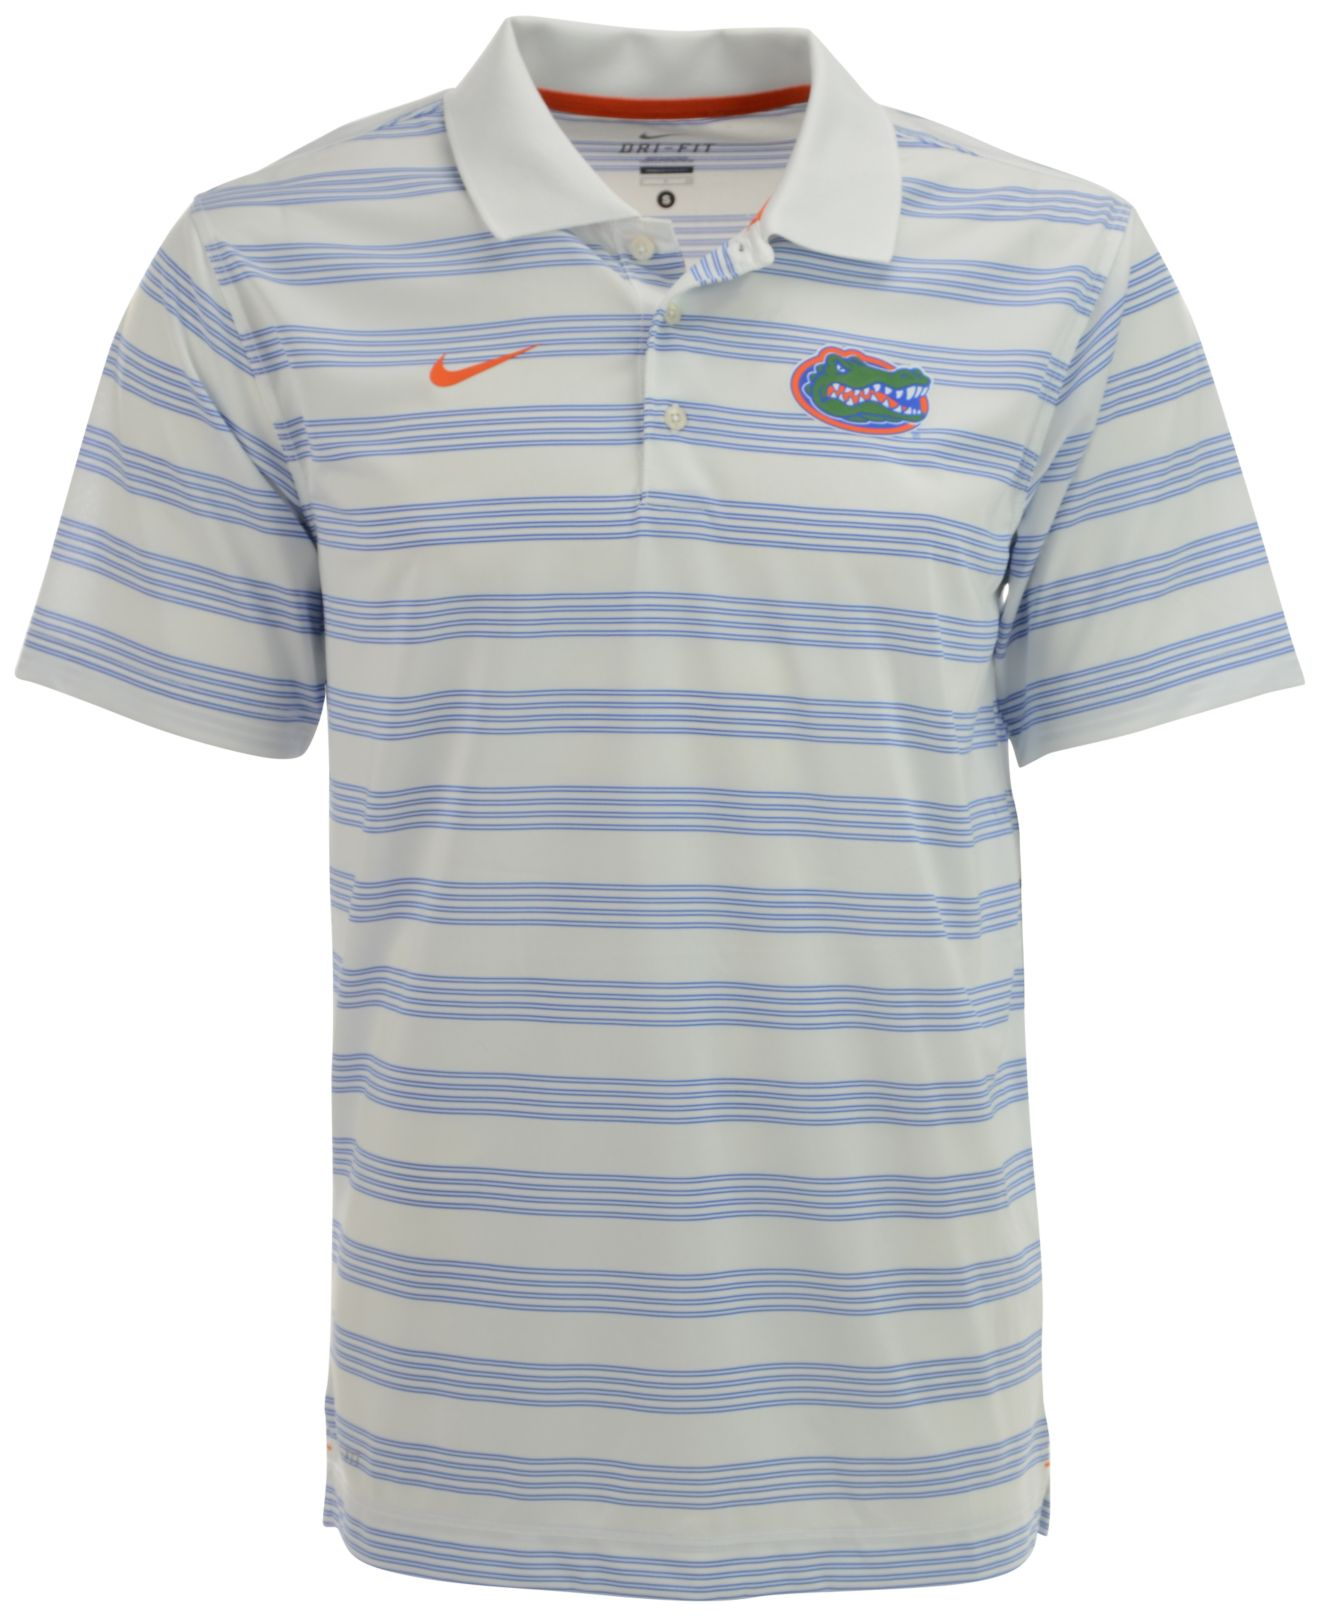 Nike men 39 s florida gators dri fit preseason polo shirt in for Dri fit collar shirts